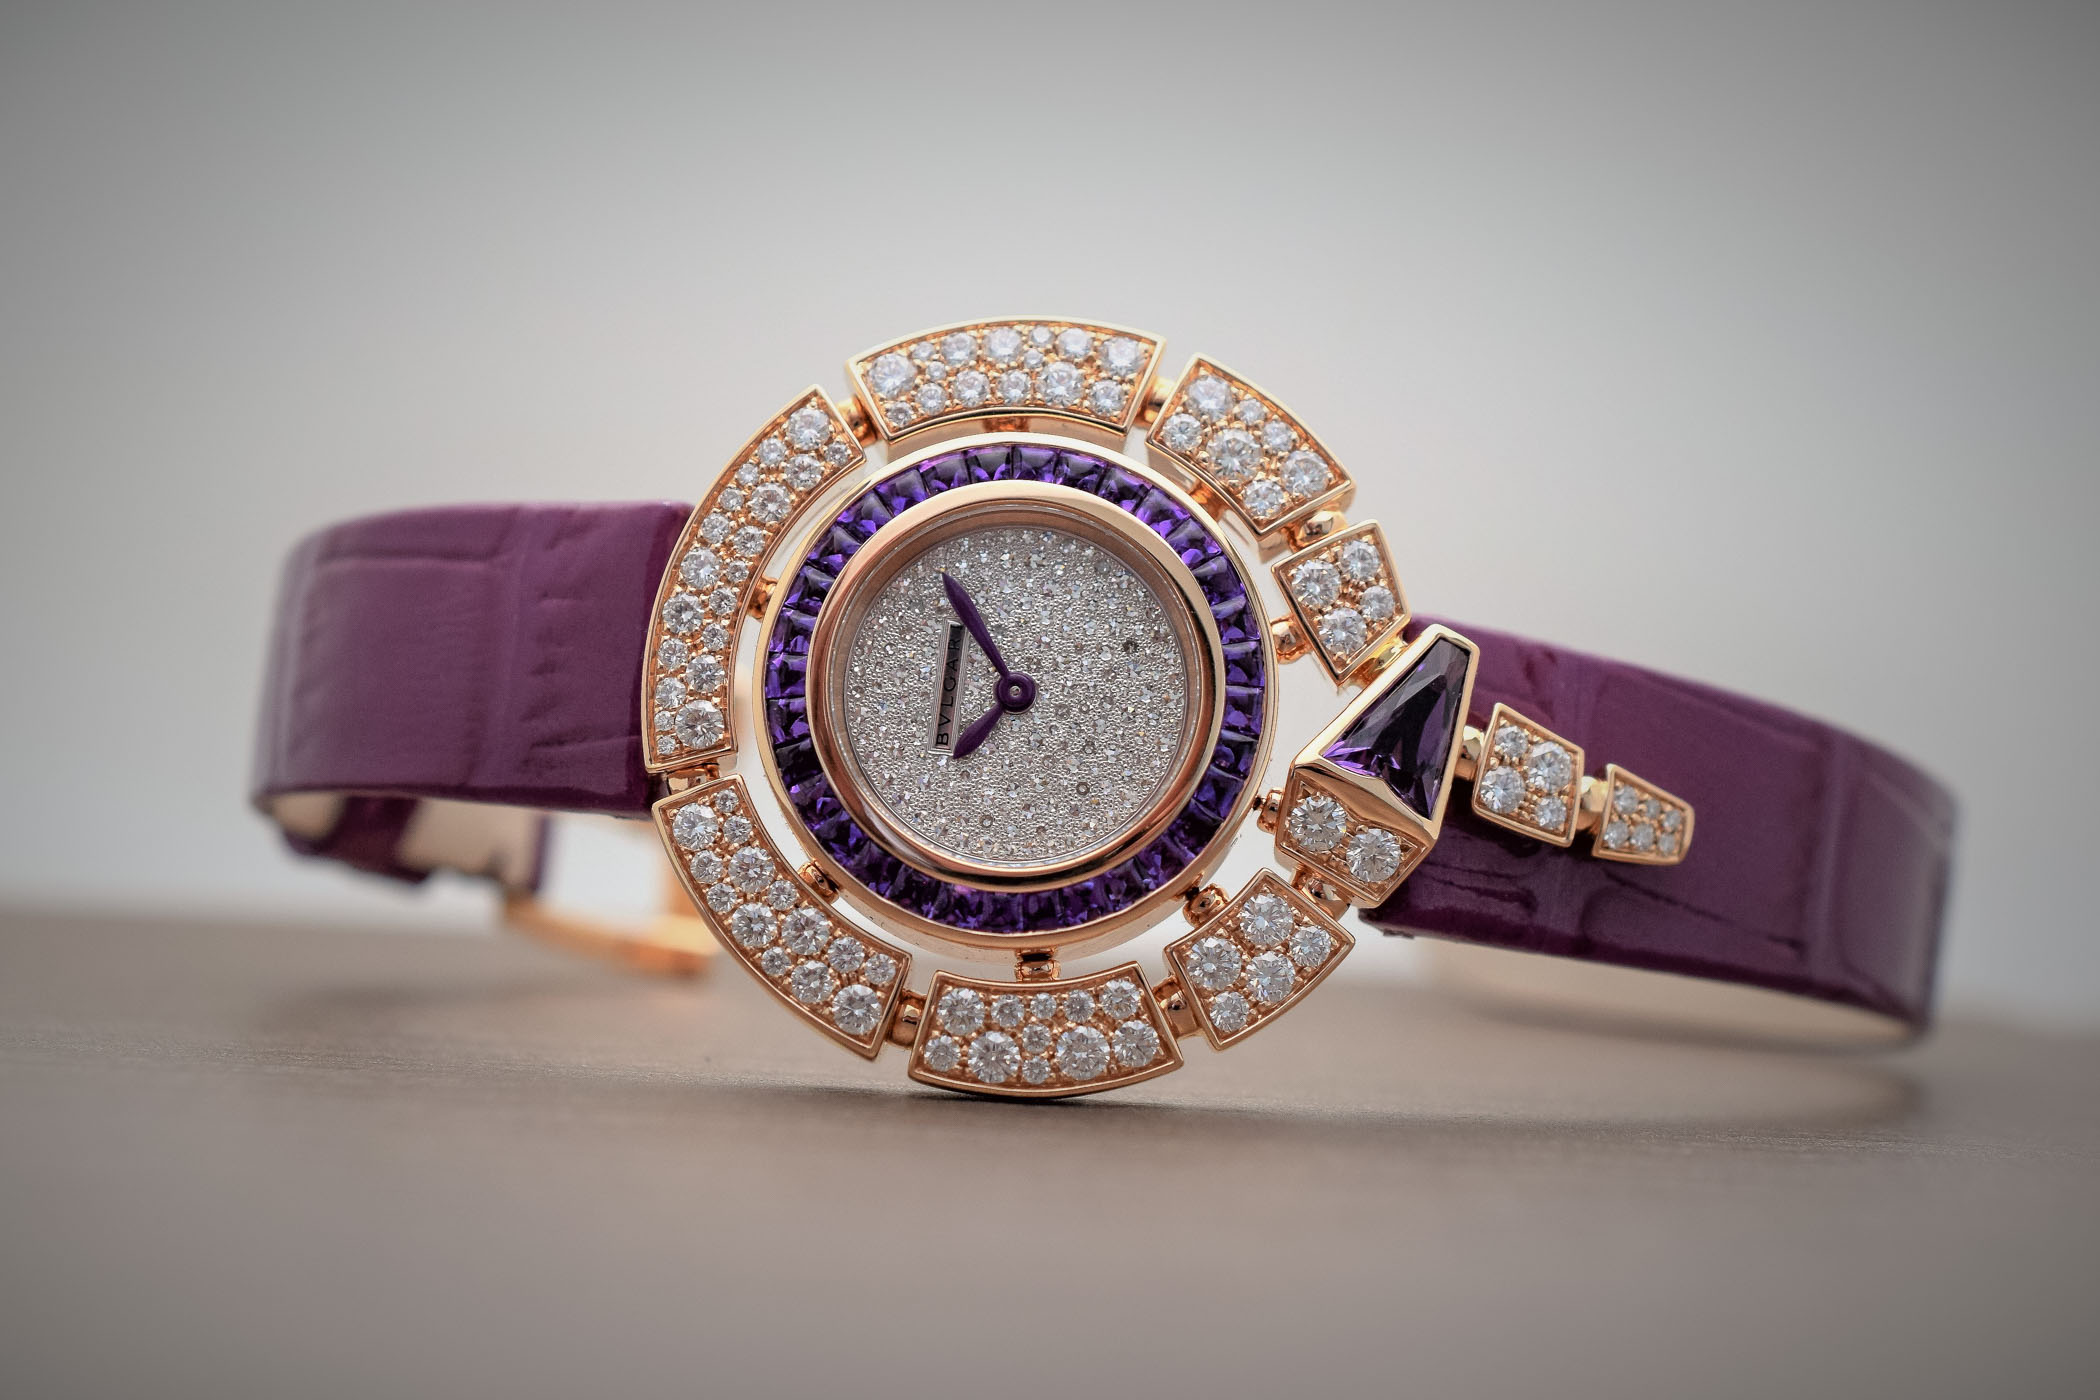 Bvlgari Amethyst capsule collection Serpenti Incantati